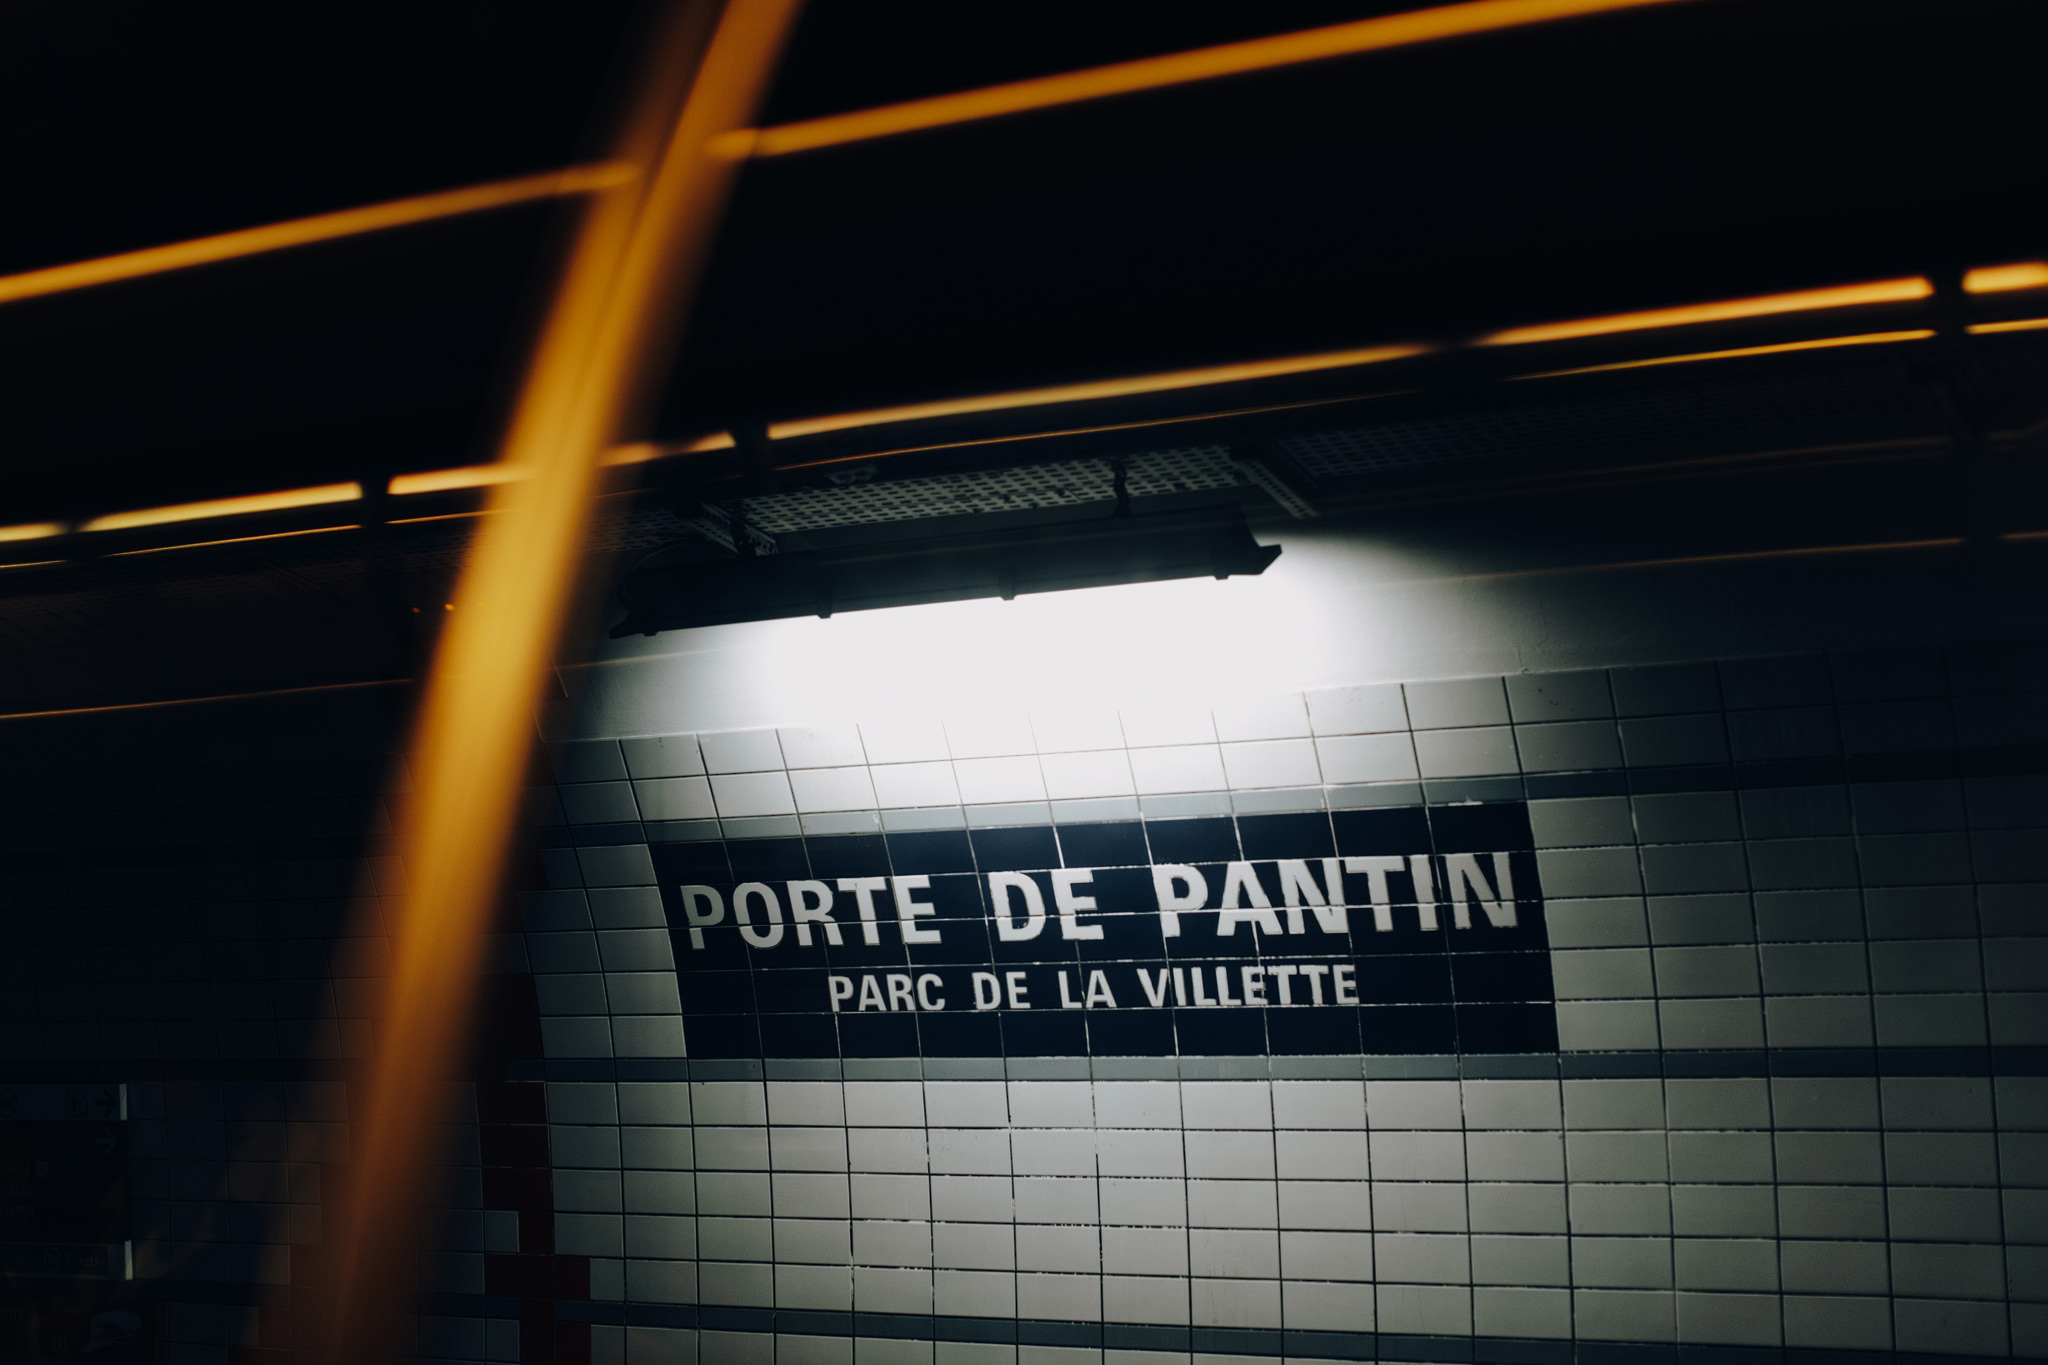 Metro of Paris, France